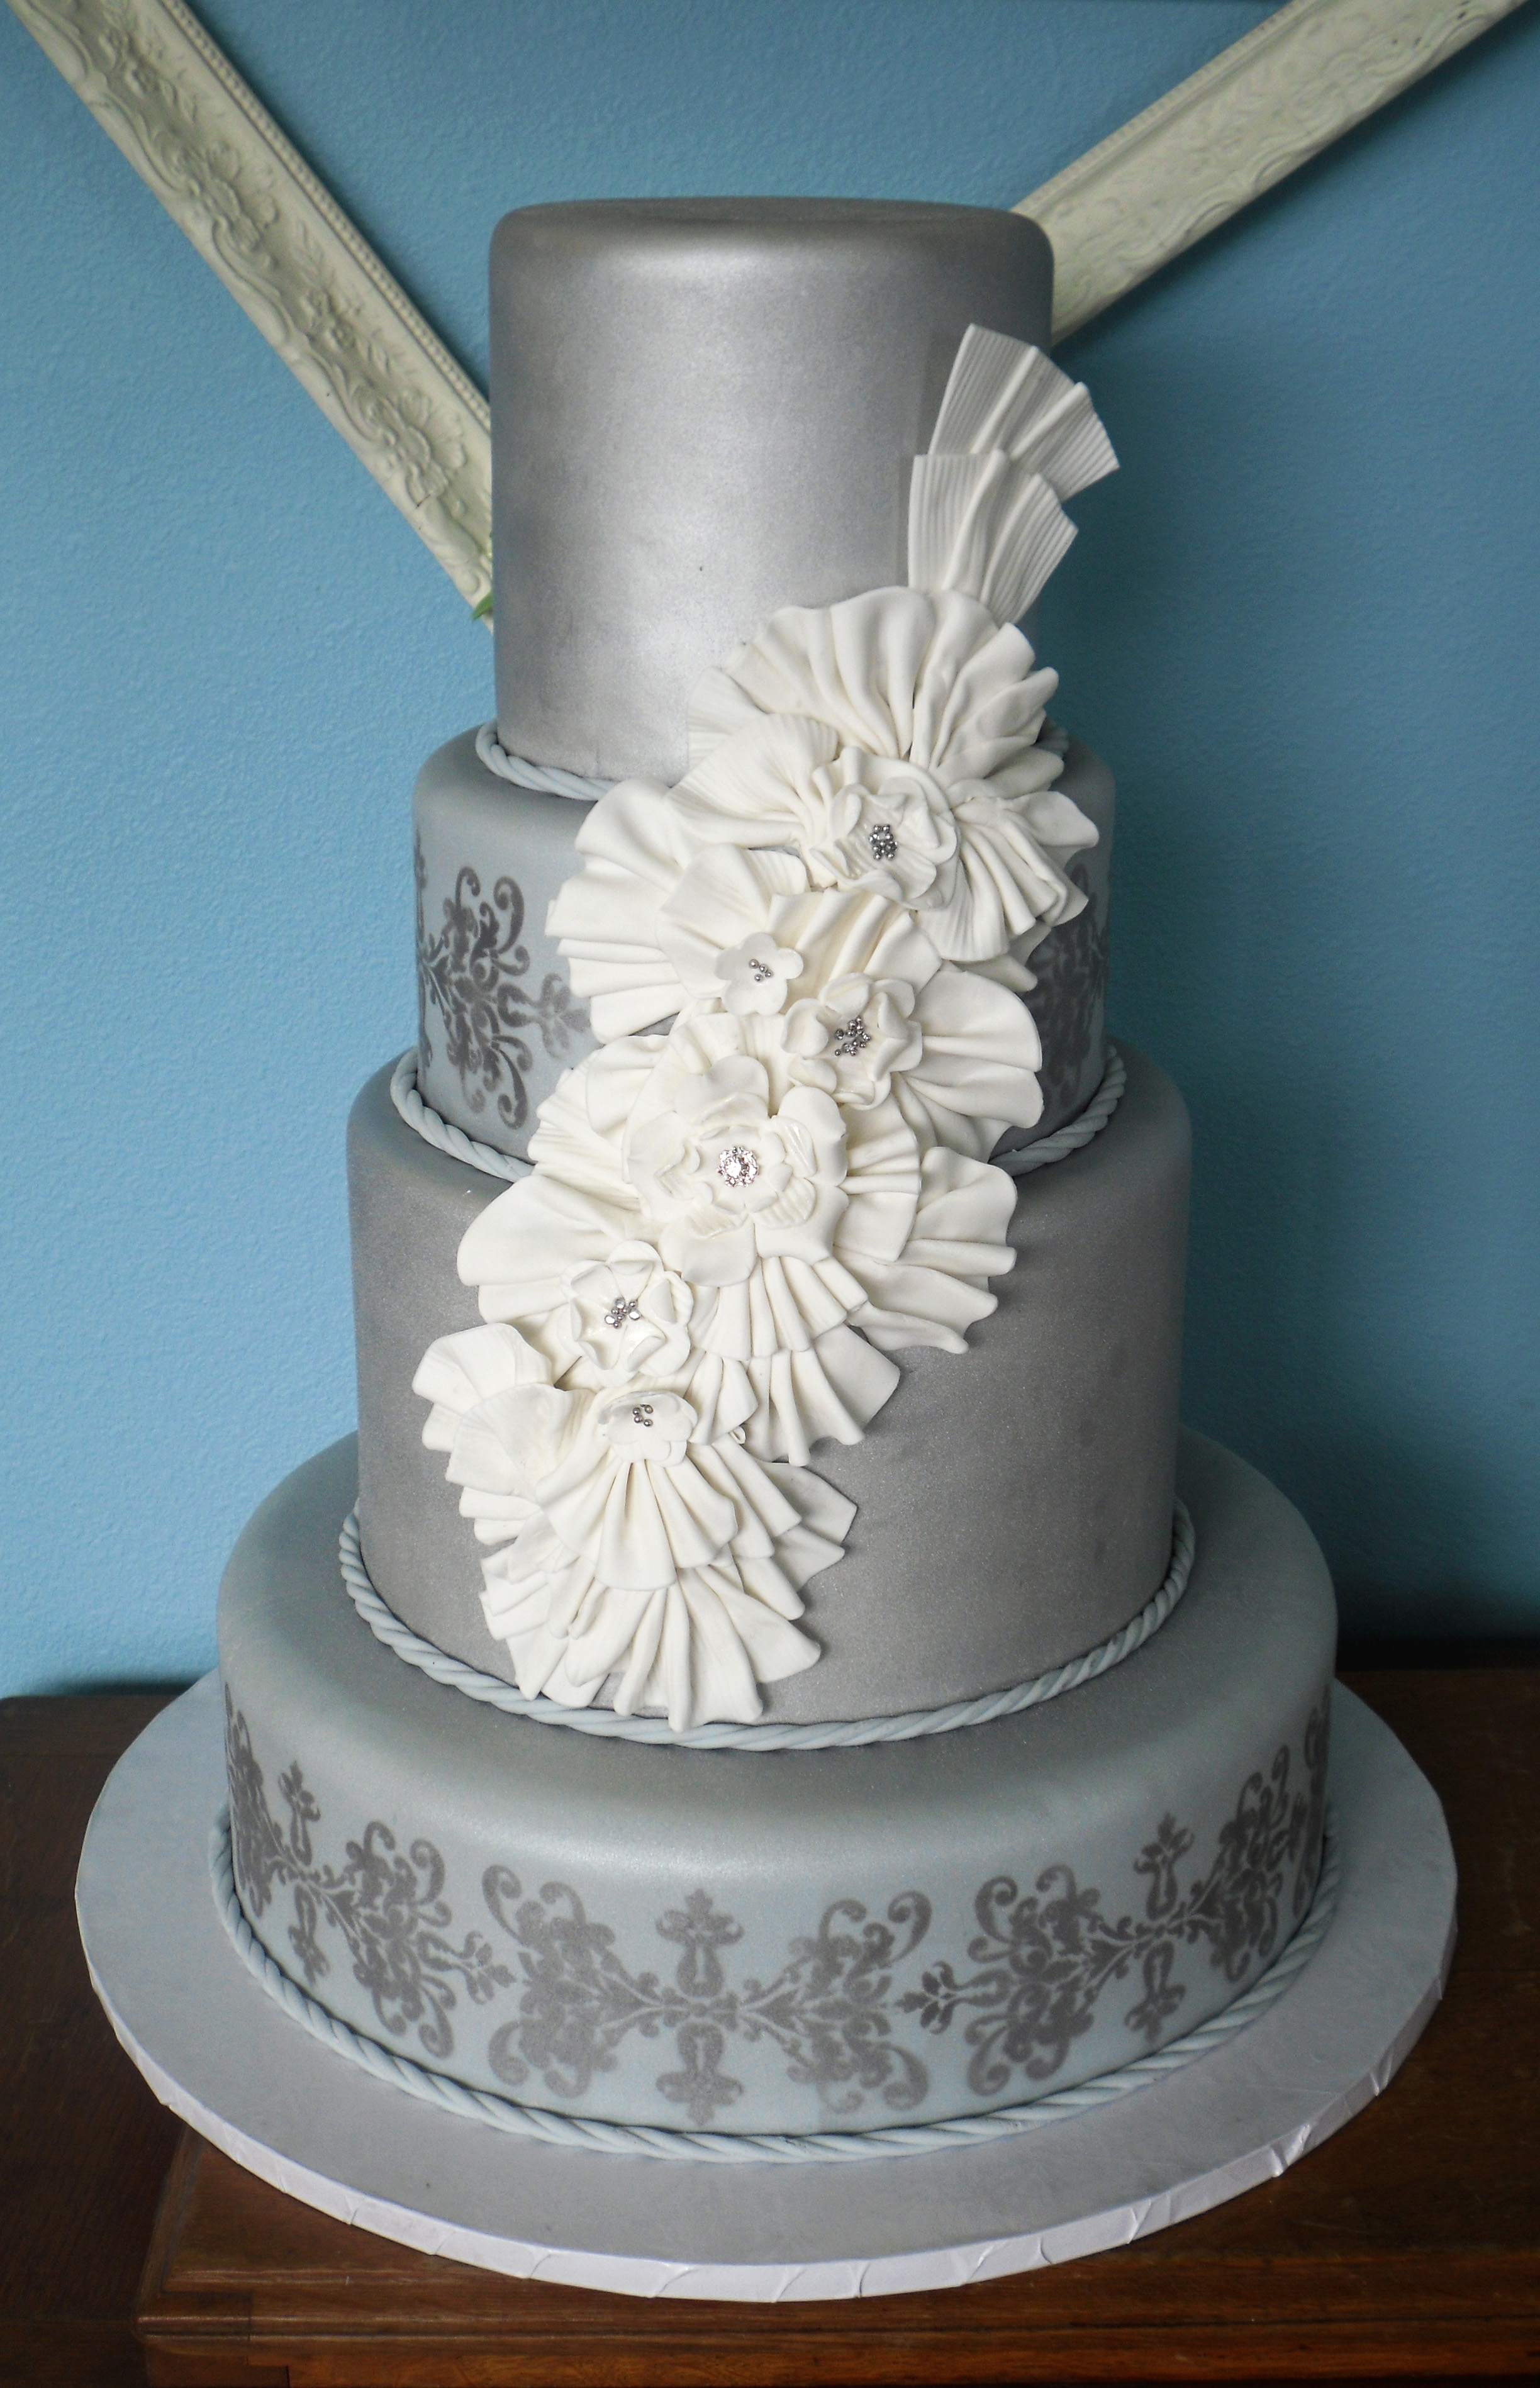 Cake White and Silver 03